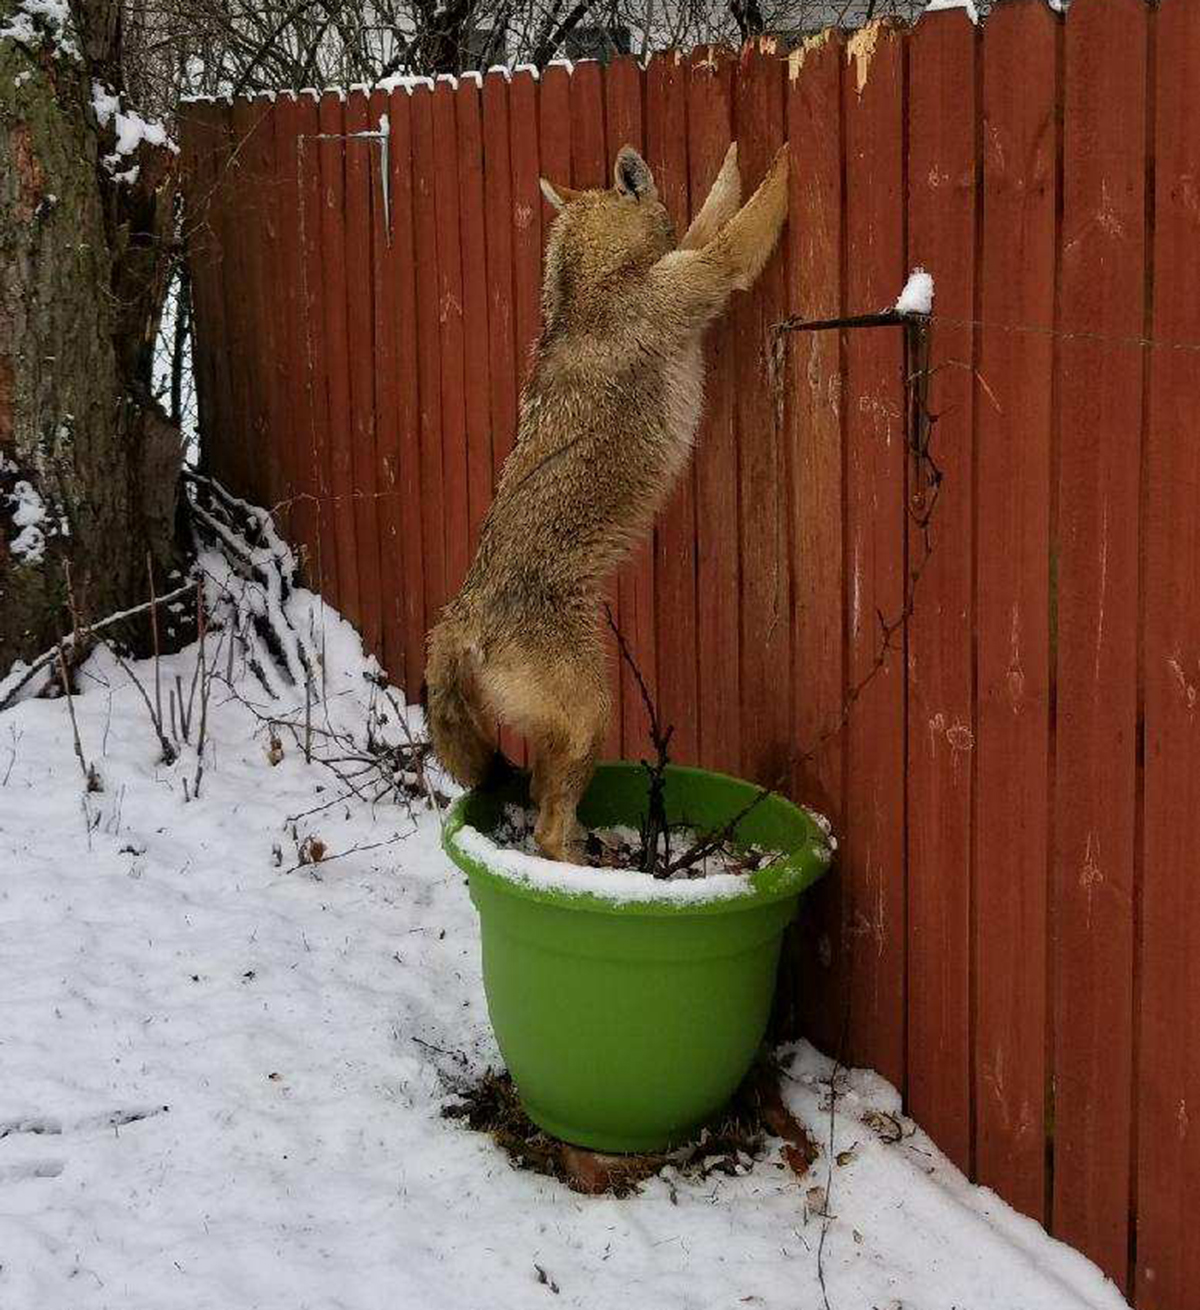 Police Animal Control Rescue Coyote Stuck In Fence